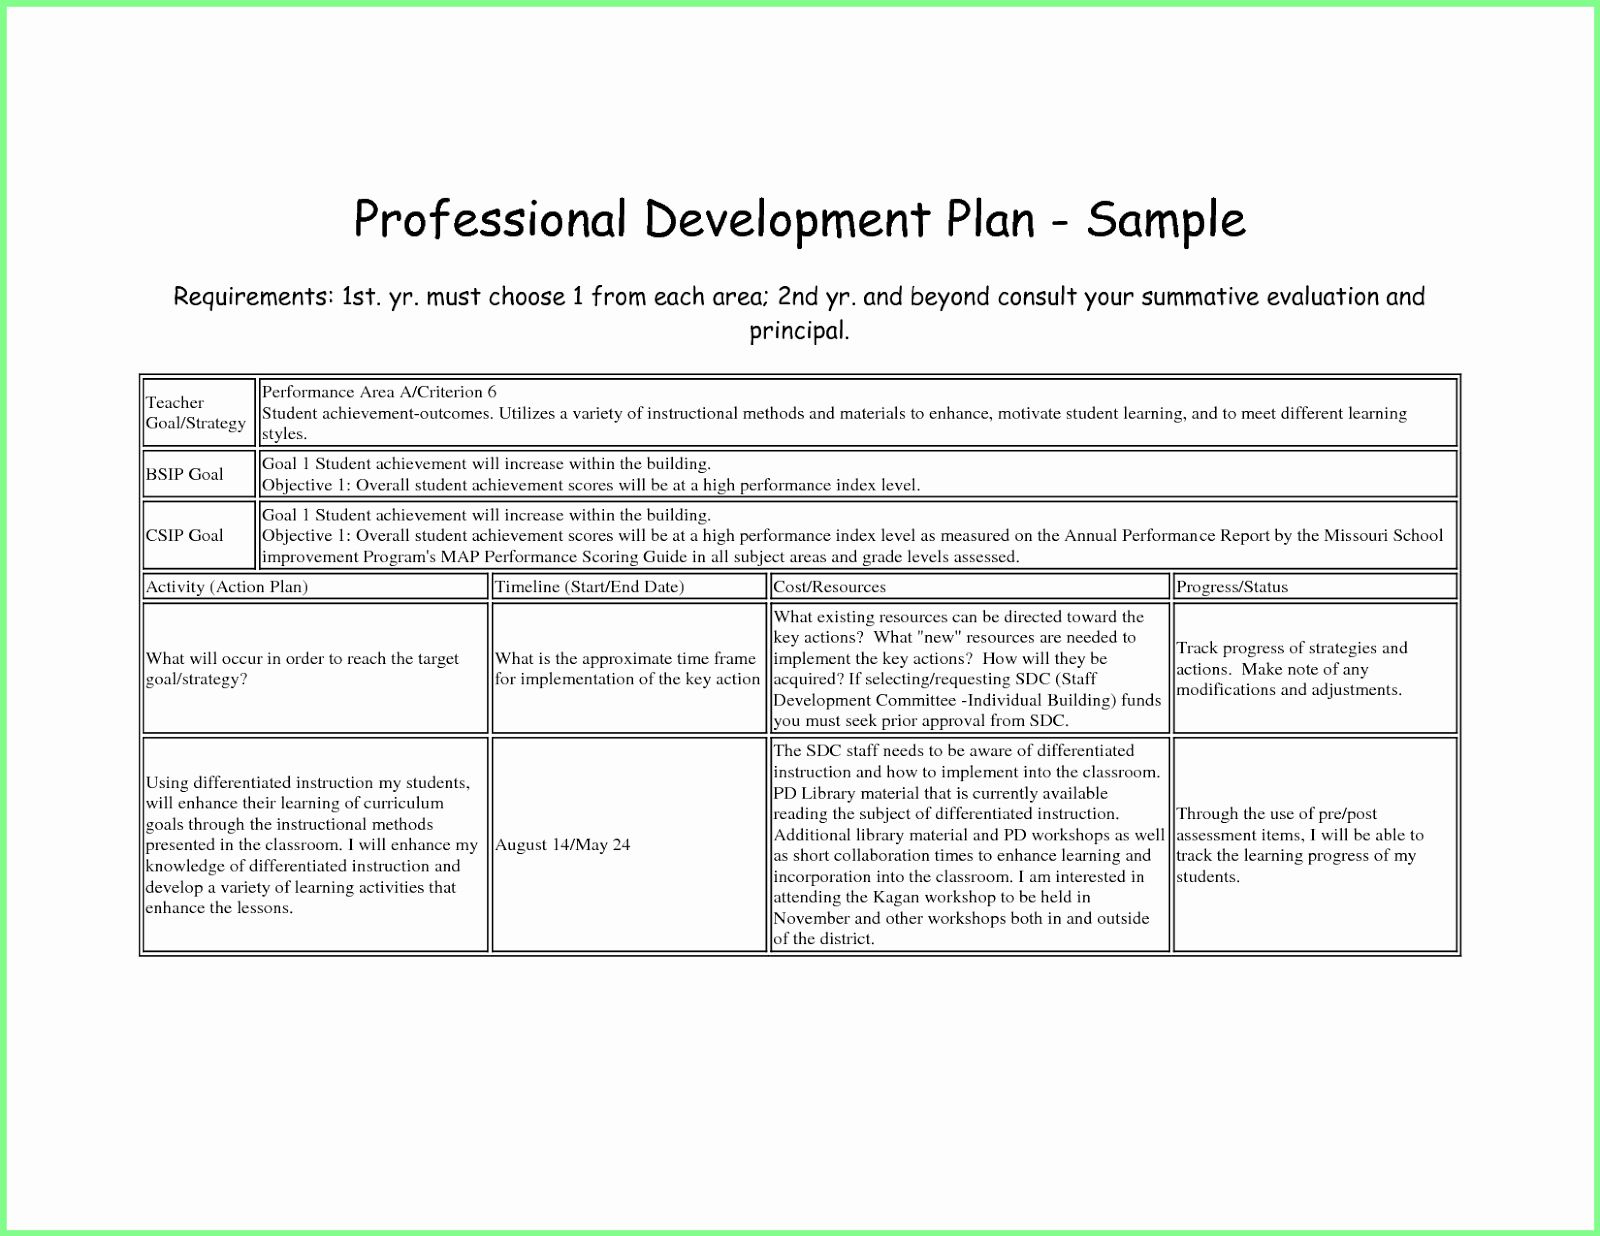 Professional Development Plan Template Best Of Image